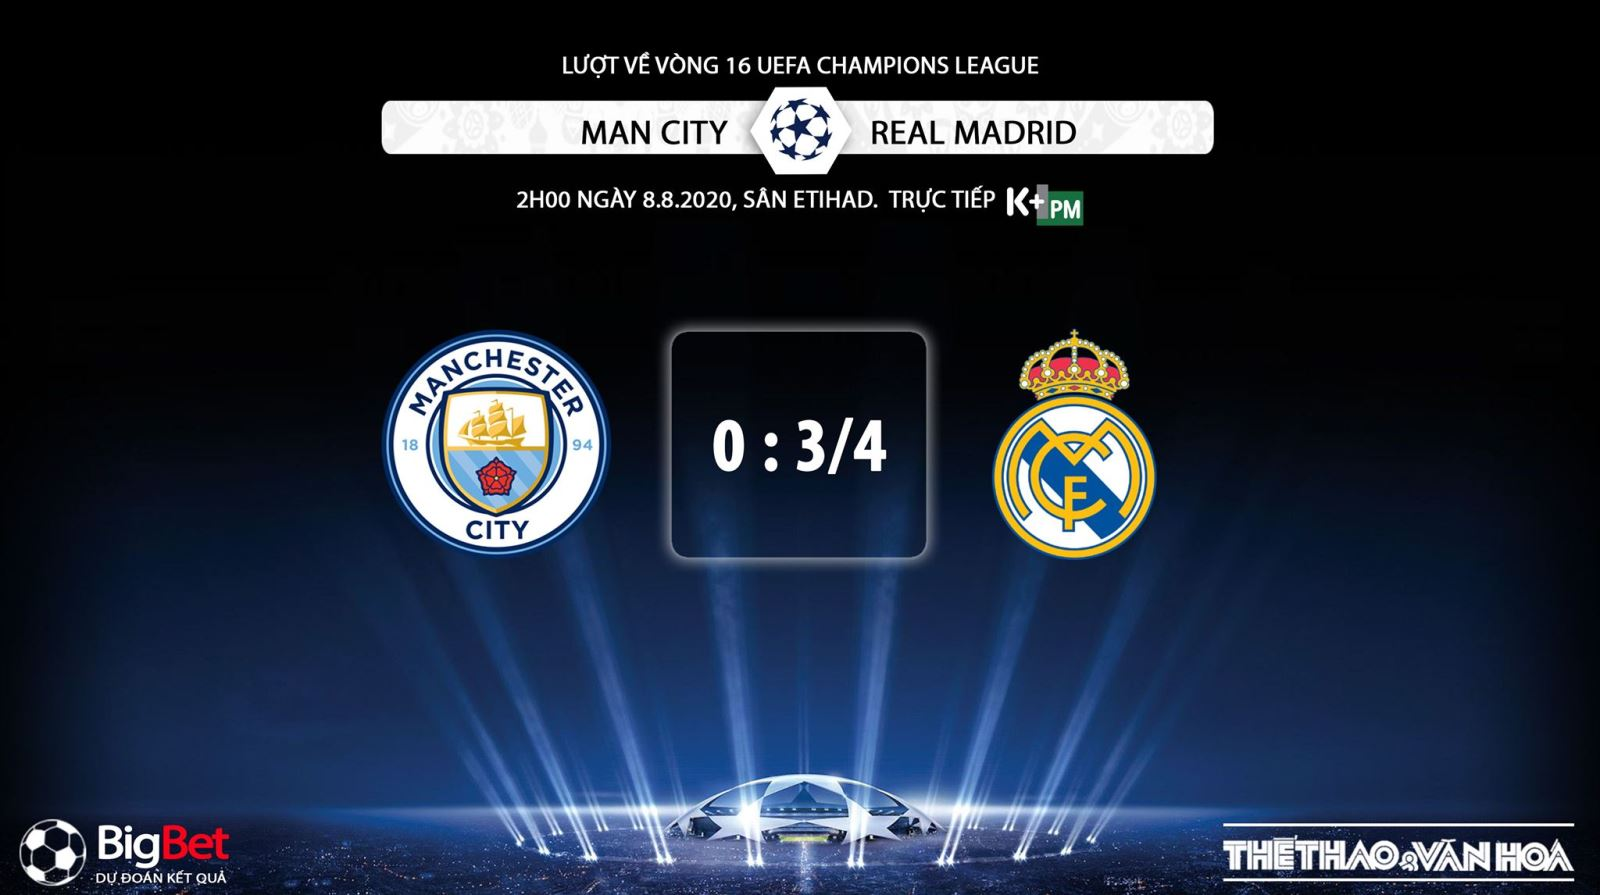 Man City vs Real Madrid, soi kèo Man City vs Real Madrid, trực tiếp bóng đá, trực tiếp Man City vs Real Madrid, nhận định Man City vs Real Madrid, dự đoán Man City vs Real Madrid